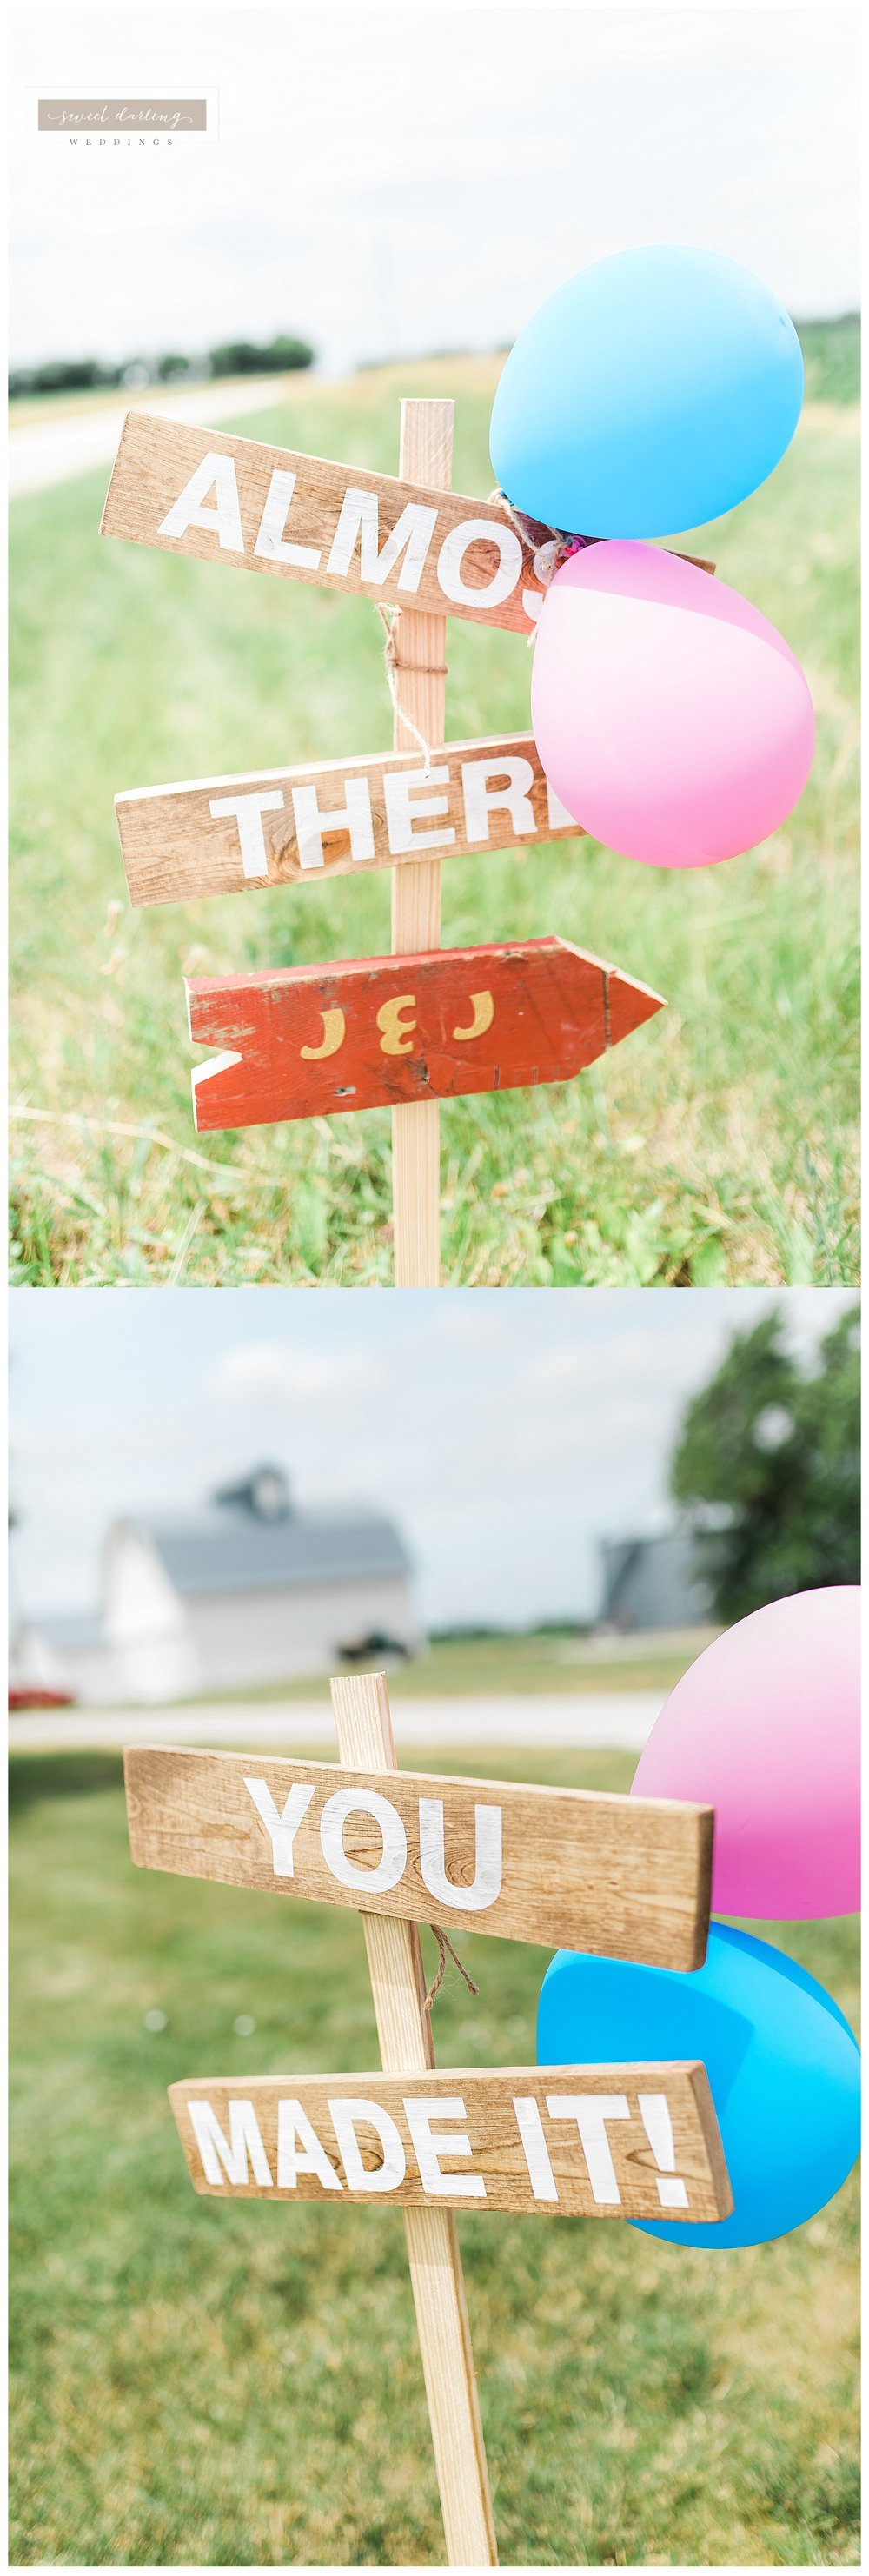 Rpaxton-illinois-engelbrecht-farm-country-wedding-photographer-sweet-darling-weddings_1274.jpg